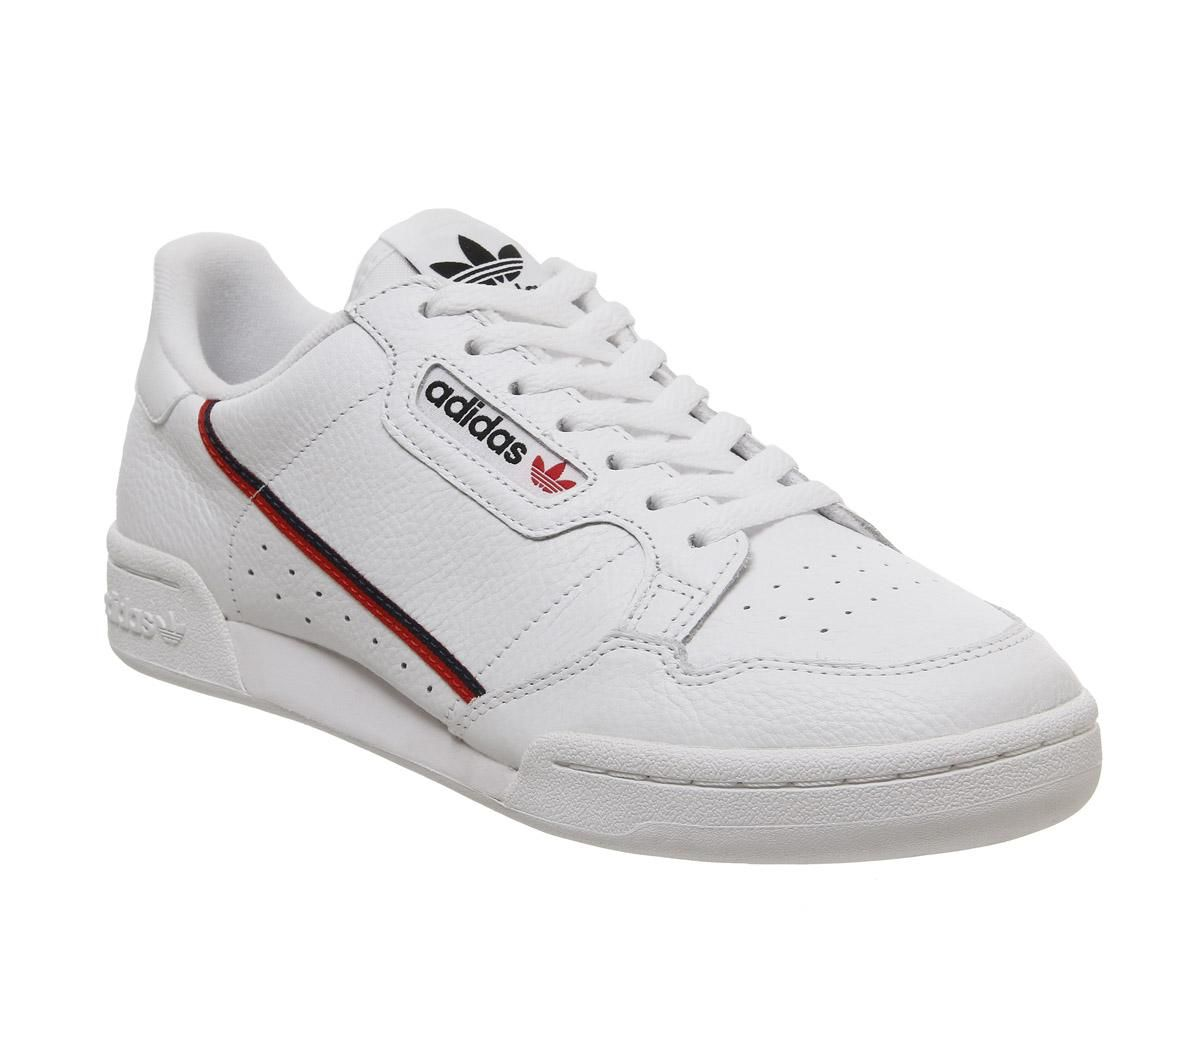 Details about Adidas Continental 80s Flash Sneakers White Red Navy- show  original title